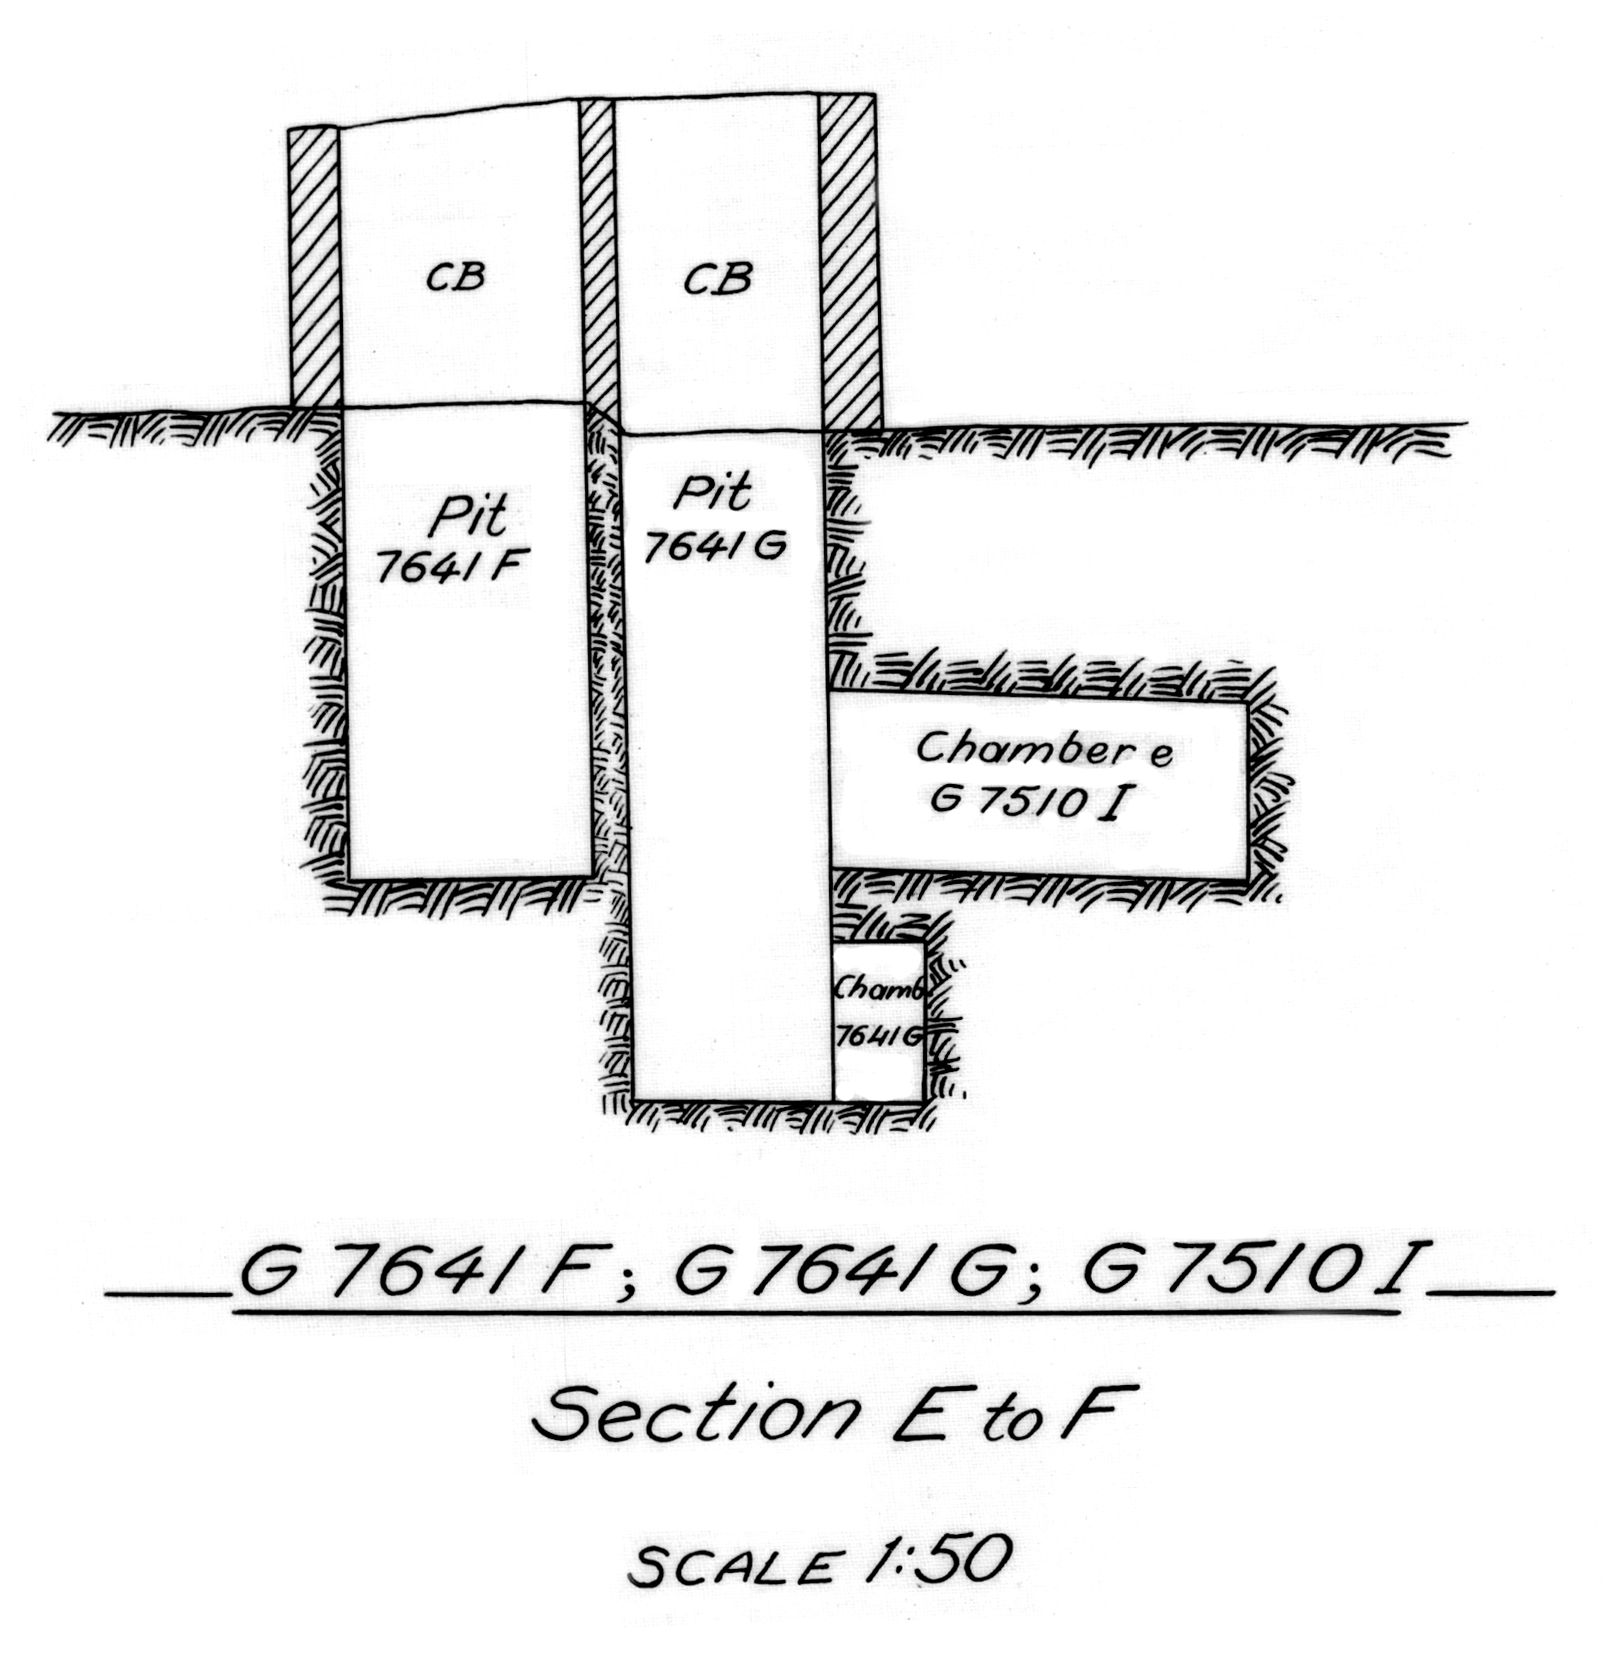 Maps and plans: G 7510, Shaft I & G 7641, Shaft F and G